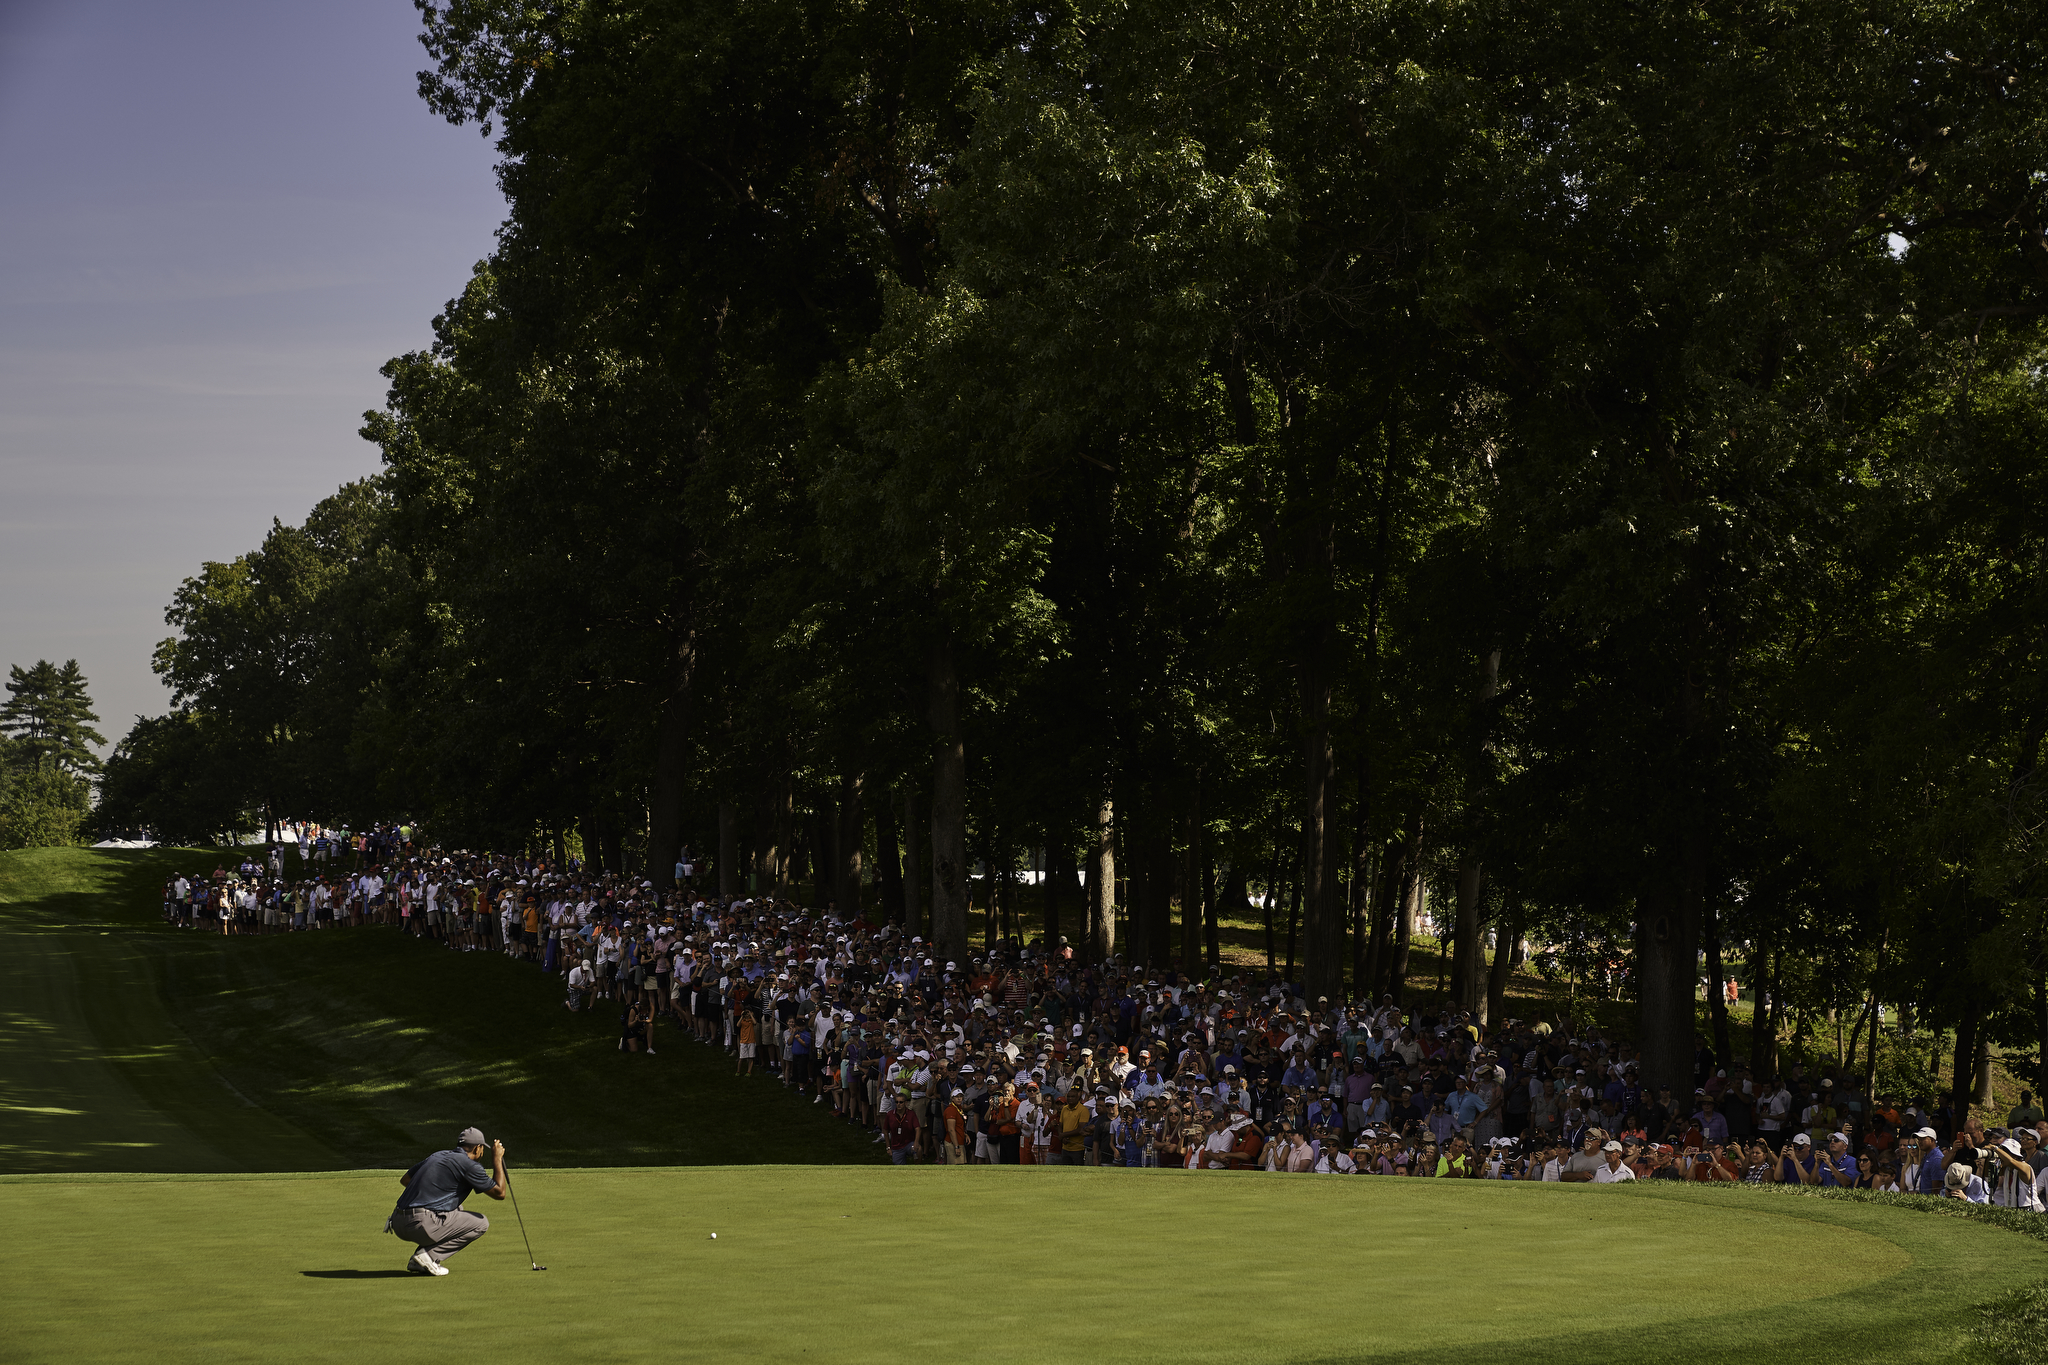 Tiger Woods lines up a putt on the 16th during Thursday's first round.  (Sony A9, Sony 70-200mm f2.8 GM)